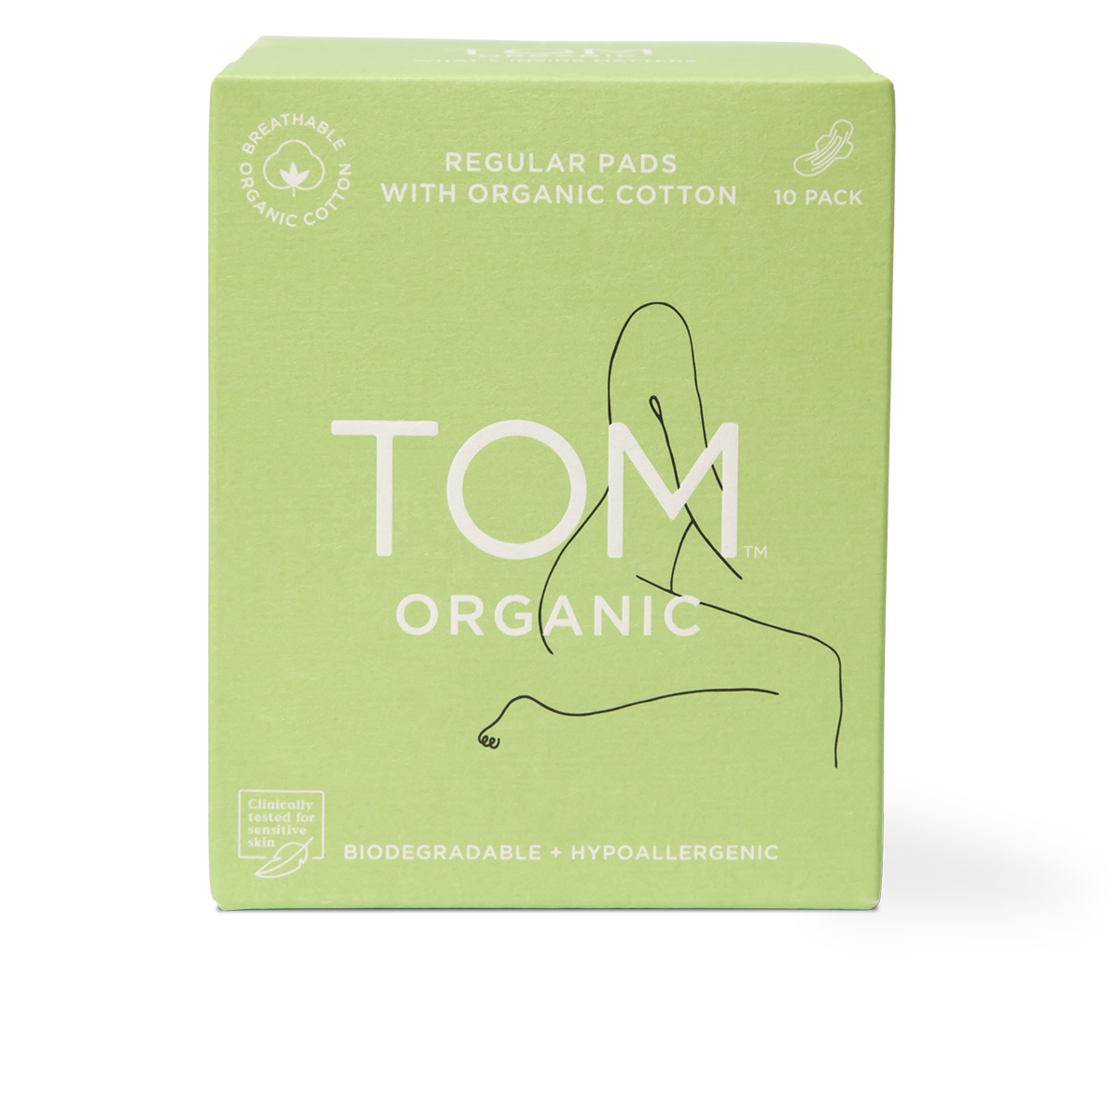 Tom organic regular pads